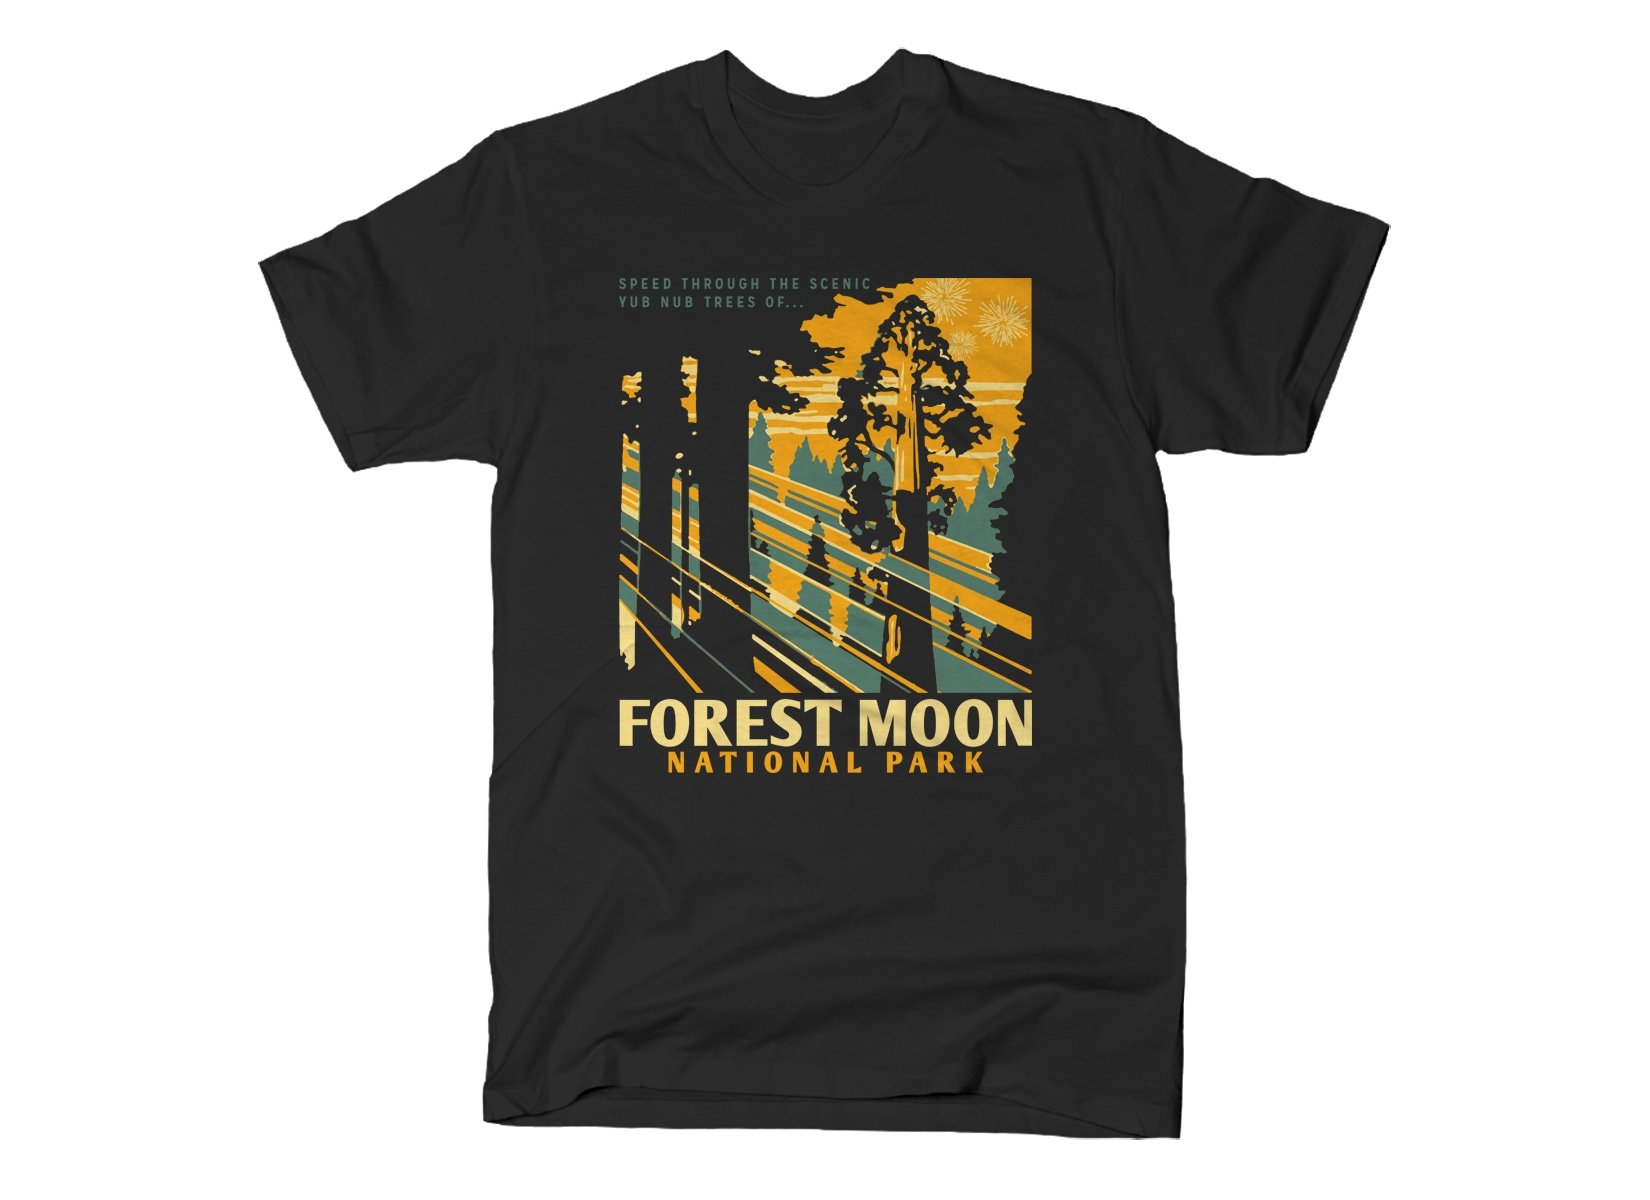 Forest Moon National Park on Mens T-Shirt